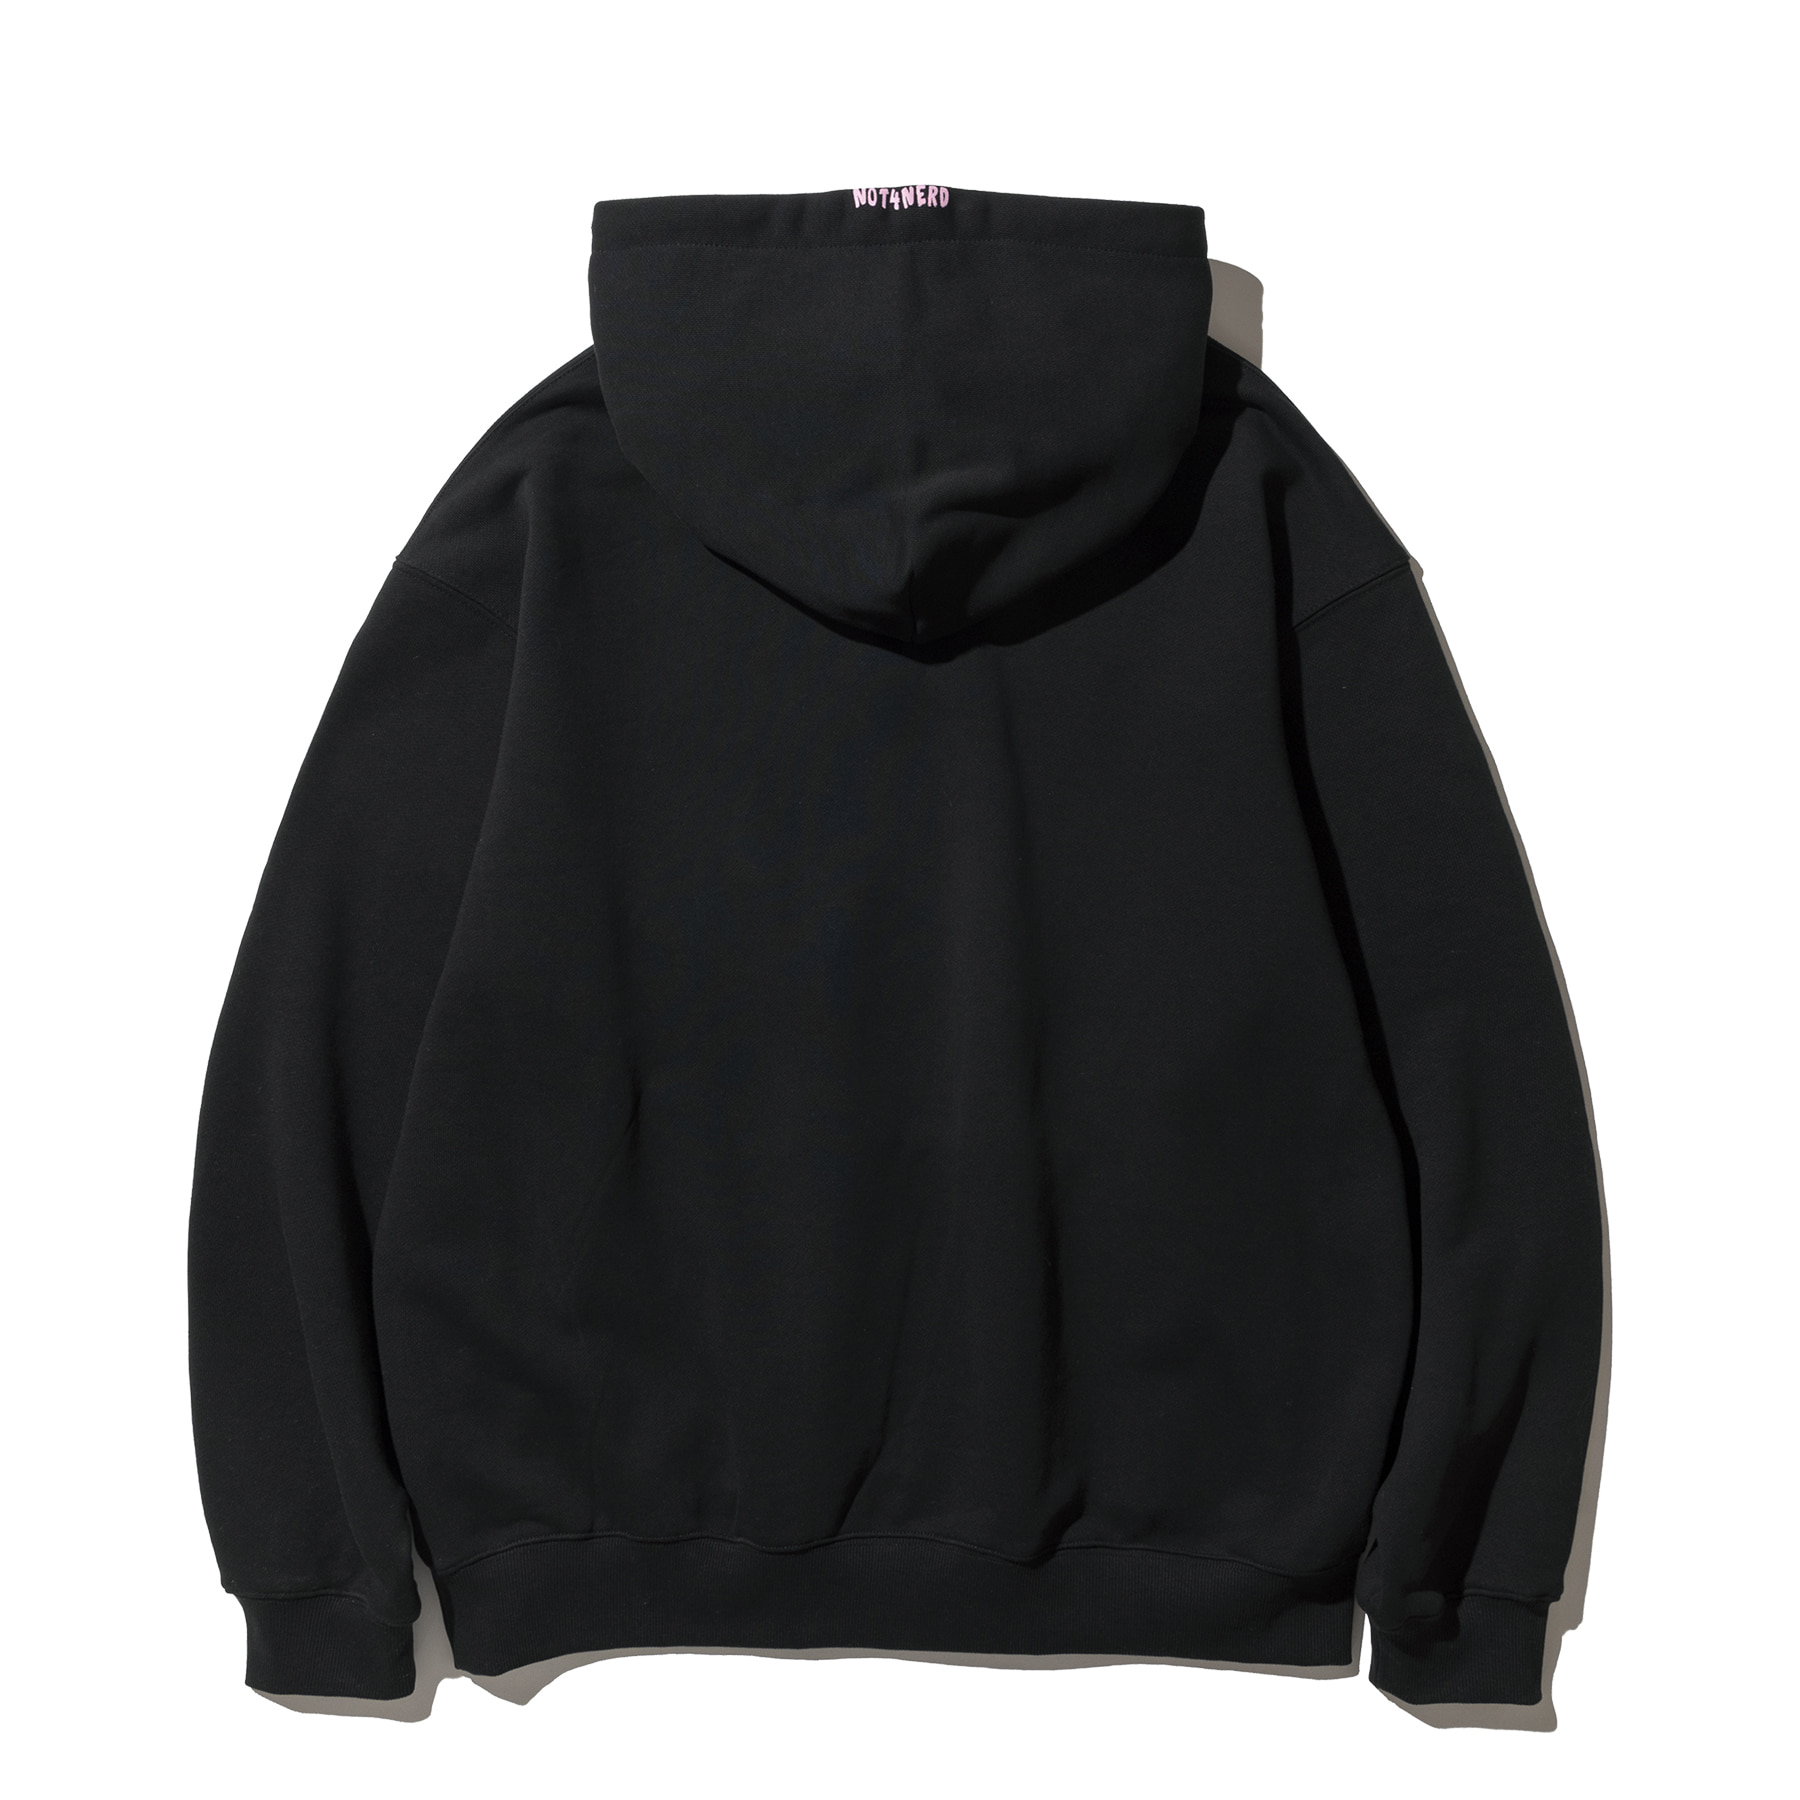 Pony Land Pullover Hood - Black,NOT4NERD